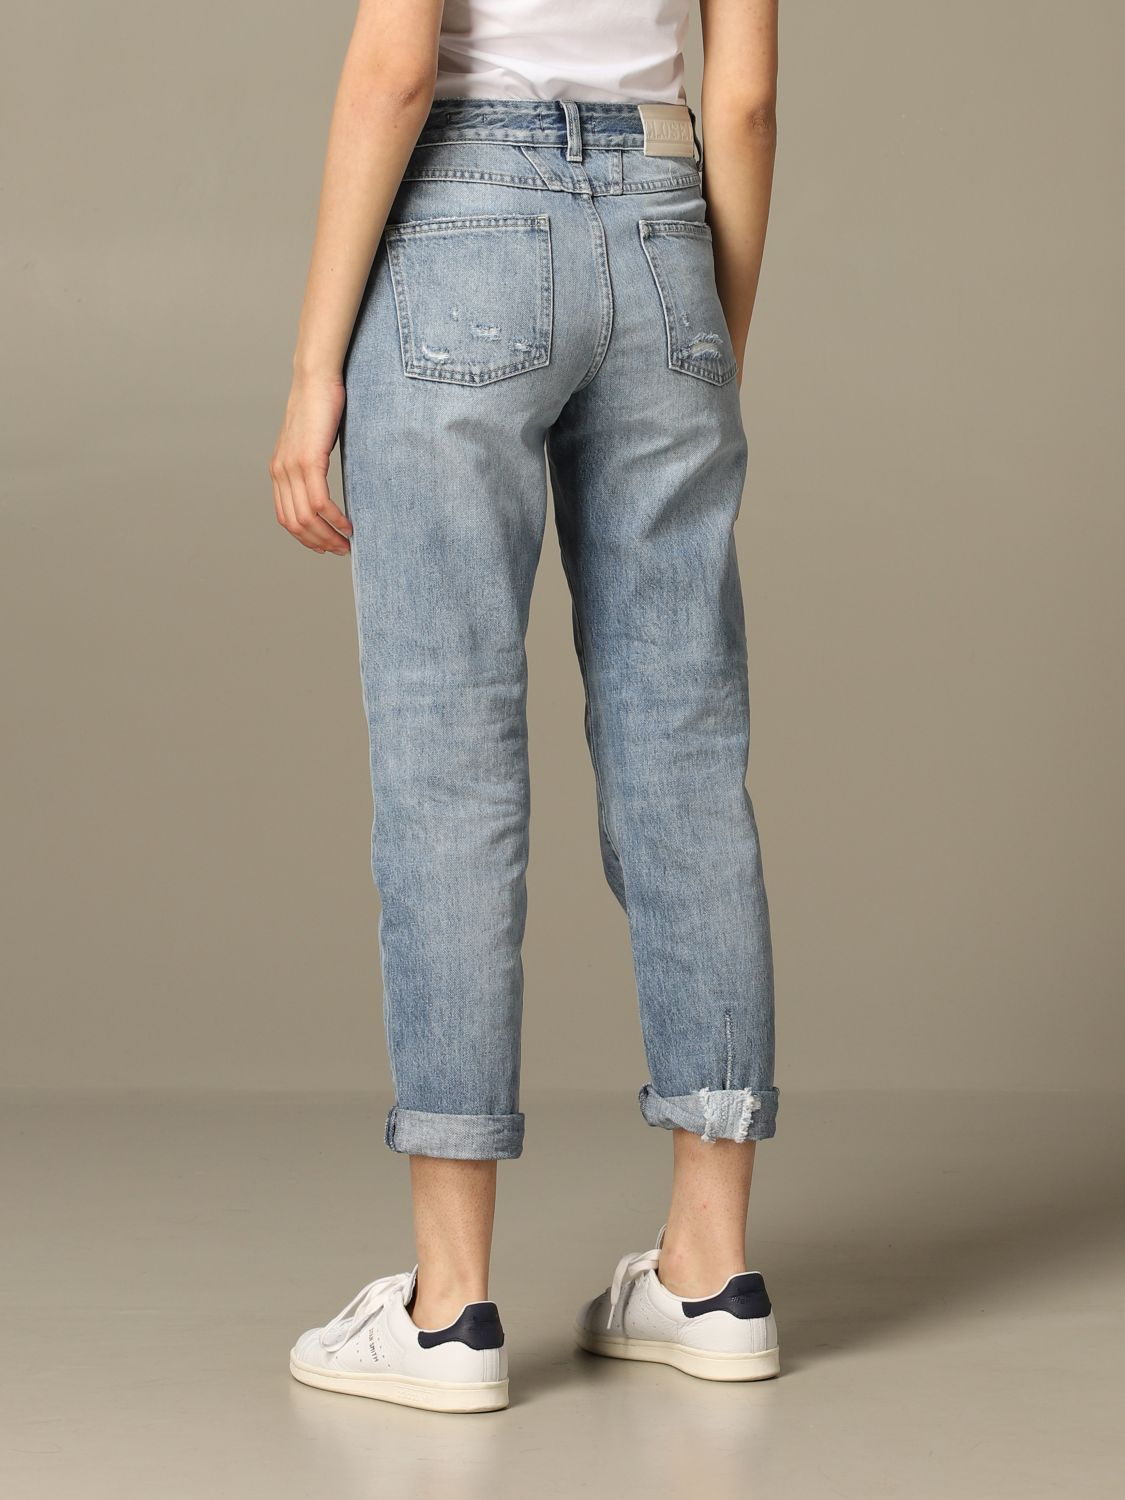 Jeans Closed: Jeans women Closed blue 2